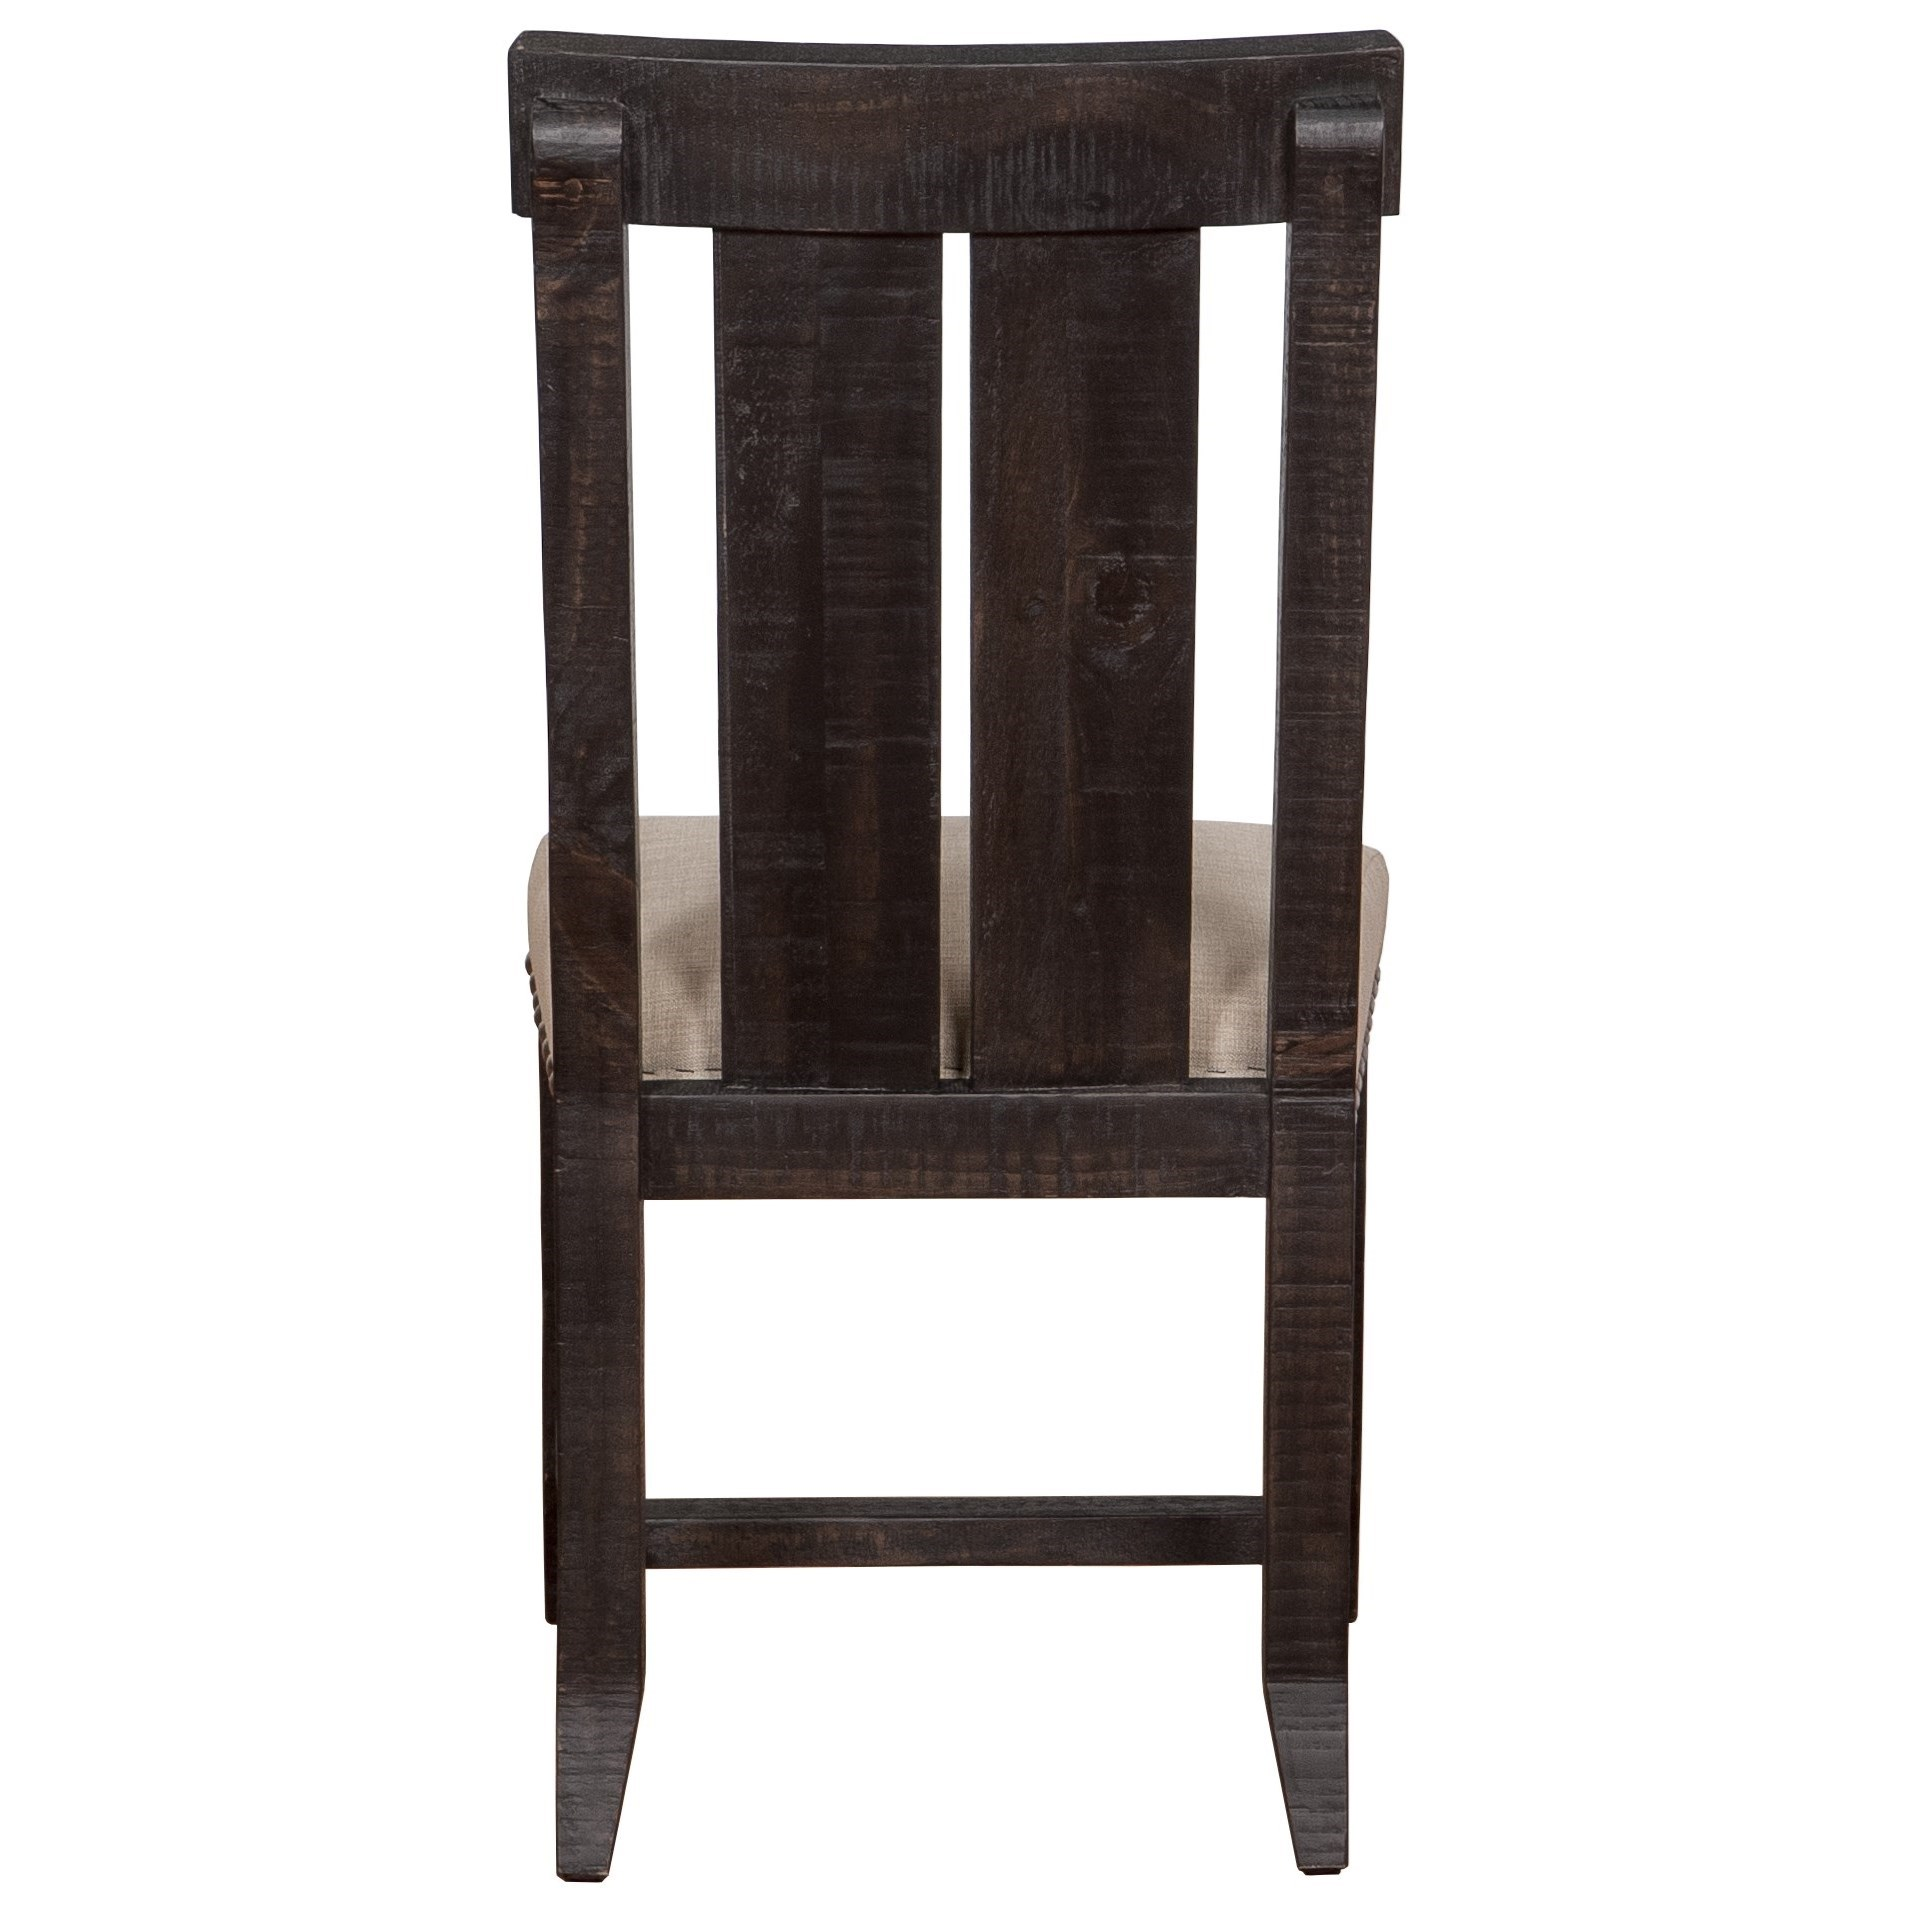 Modus International Yosemite 7yc966w Cafe Wood Side Chair